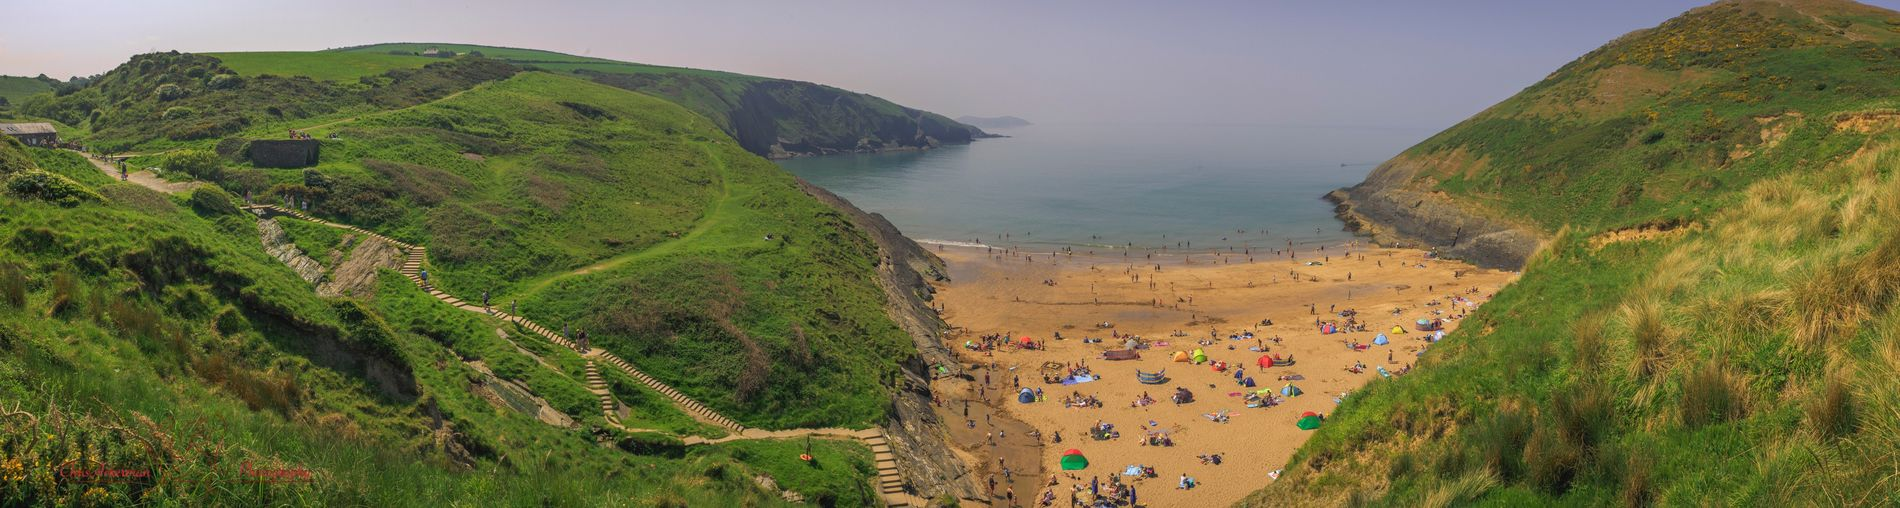 Beachphotography Cymruambyth Cymru-photography Cymru Wales UK Wales❤ Mwnt Water Land Sea Beauty In Nature Beach Nature The Great Outdoors - 2018 EyeEm Awards Tranquility Tranquil Scene High Angle View Real People Outdoors